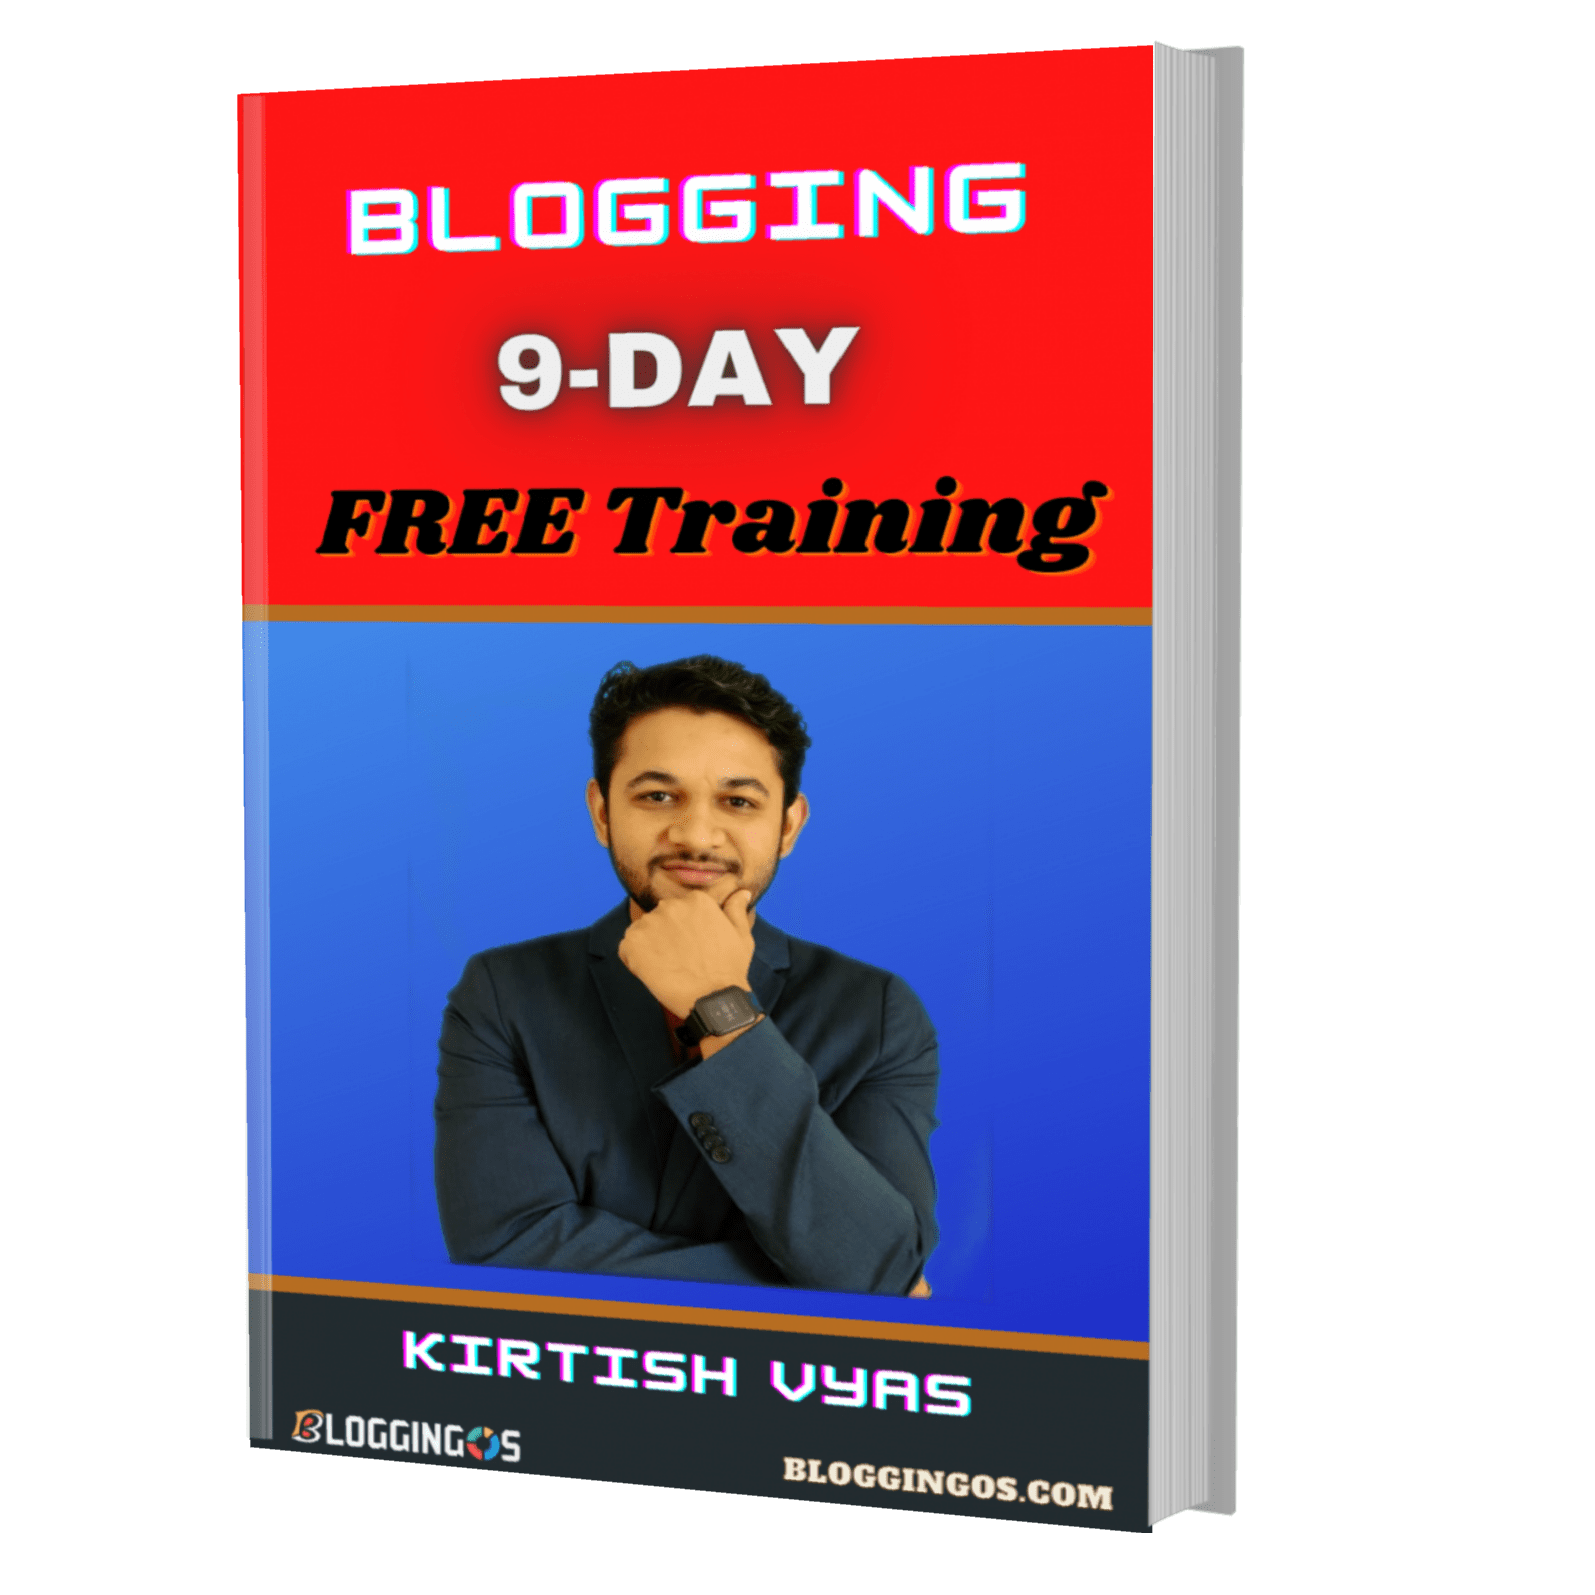 MR VYAS Blogging 9 Day Free Training